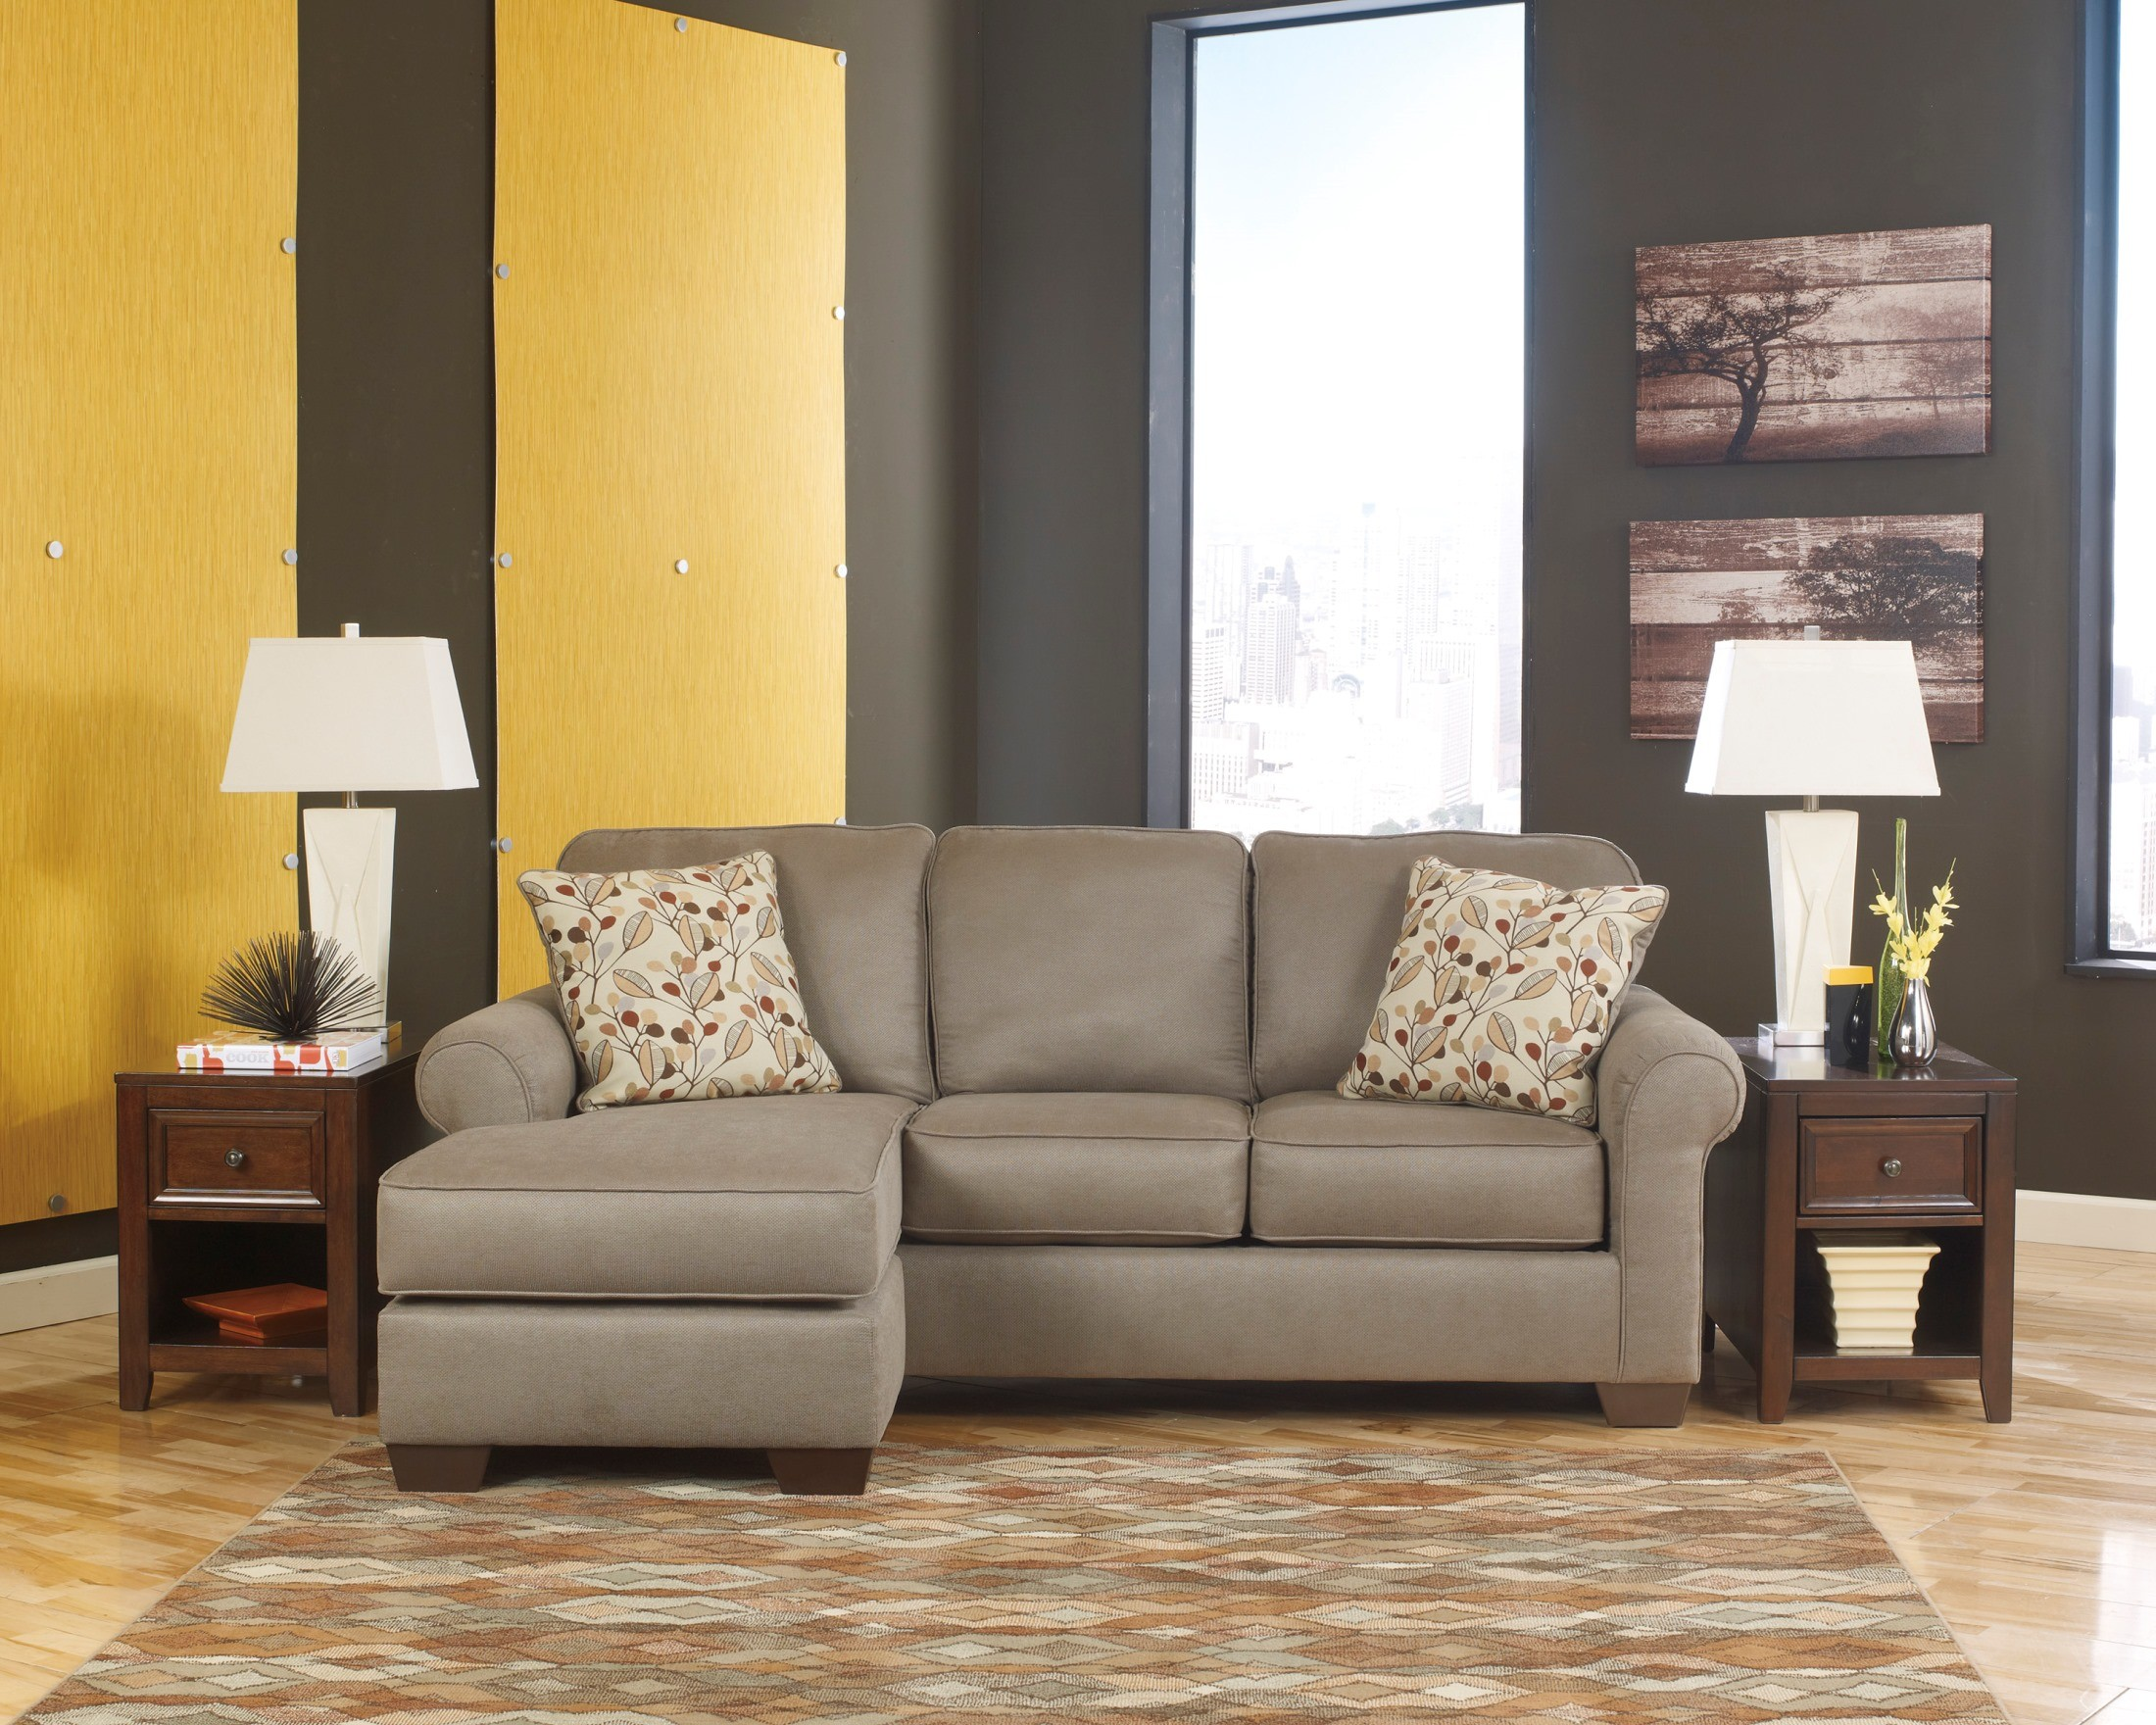 Danely dusk sofa with chaise from ashley 3550018 - Apartment size sofa with chaise ...